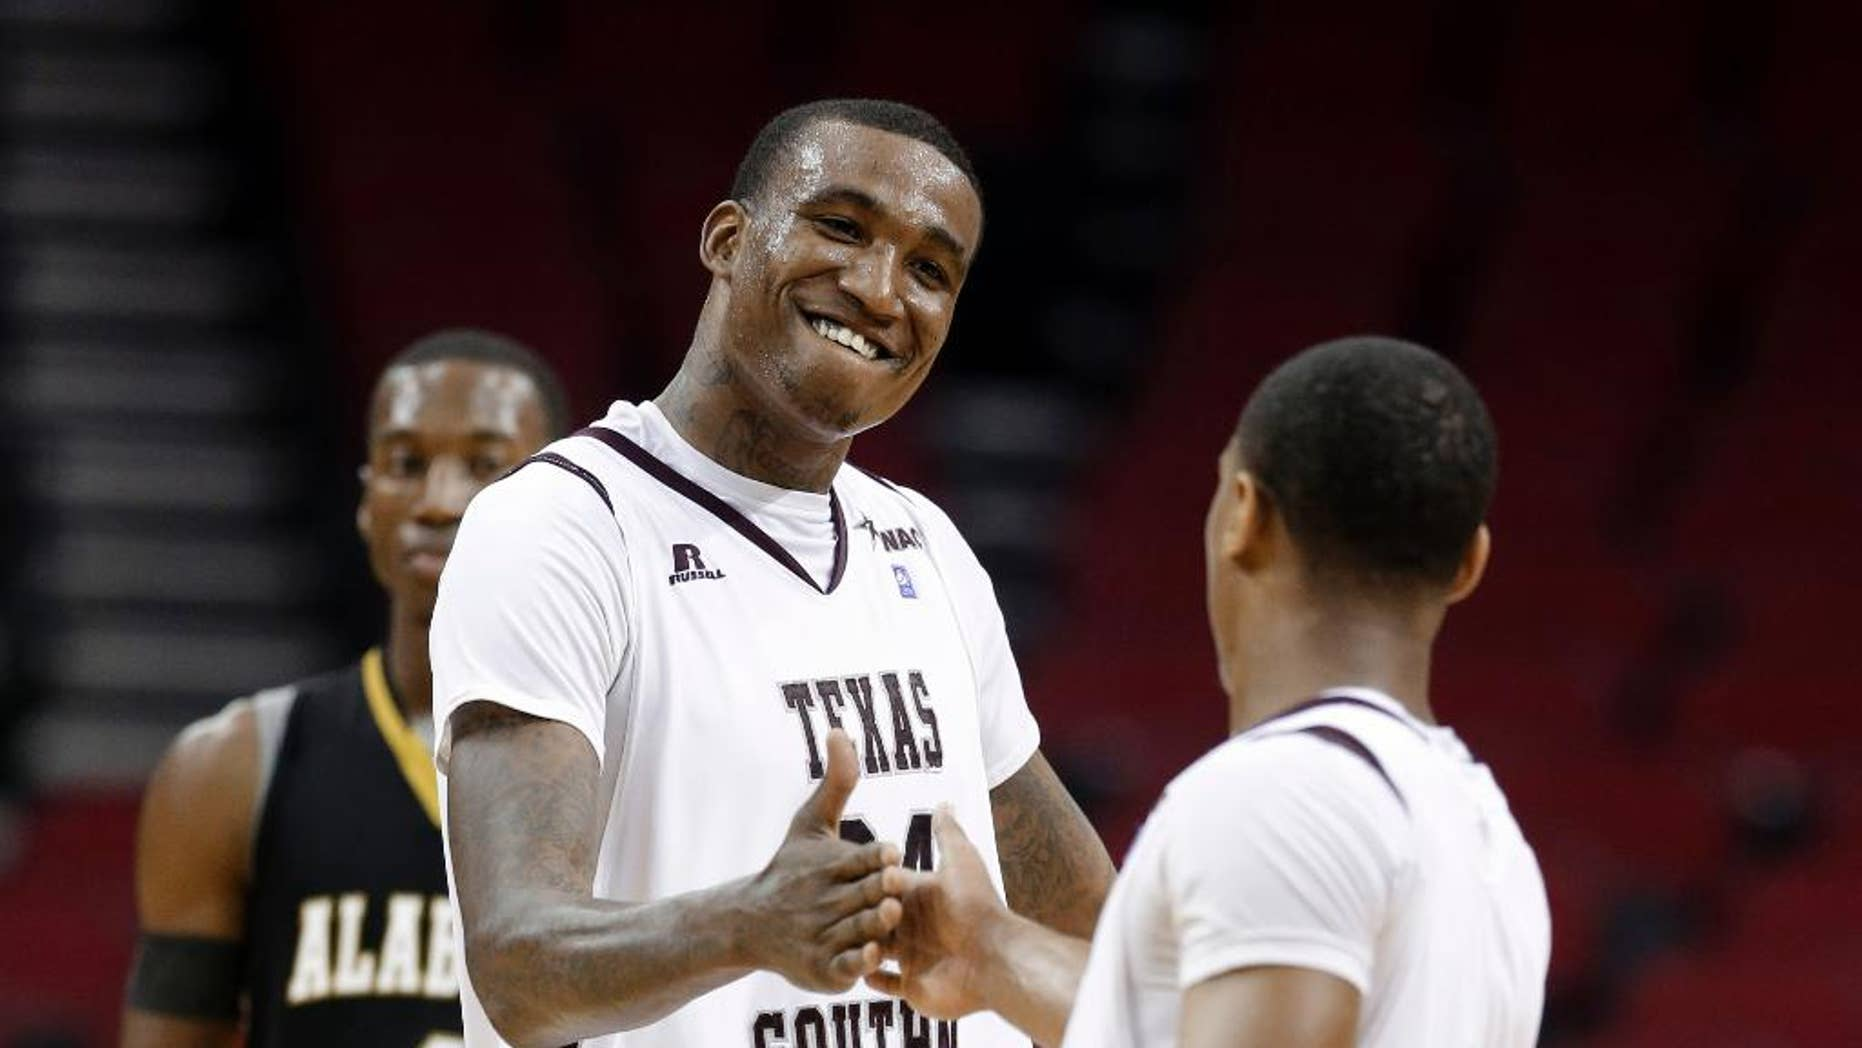 Texas Southern's Aaric Murray (24) celebrates with Madarious Gibbs (3) after Texas Southern defeated Alabama State in an NCAA college basketball game in the semifinals of the Southwestern Athletic Conference men's tournament Friday, March 14, 2014, in Houston. Texas Southern won 73-61. (AP Photo/David J. Phillip)